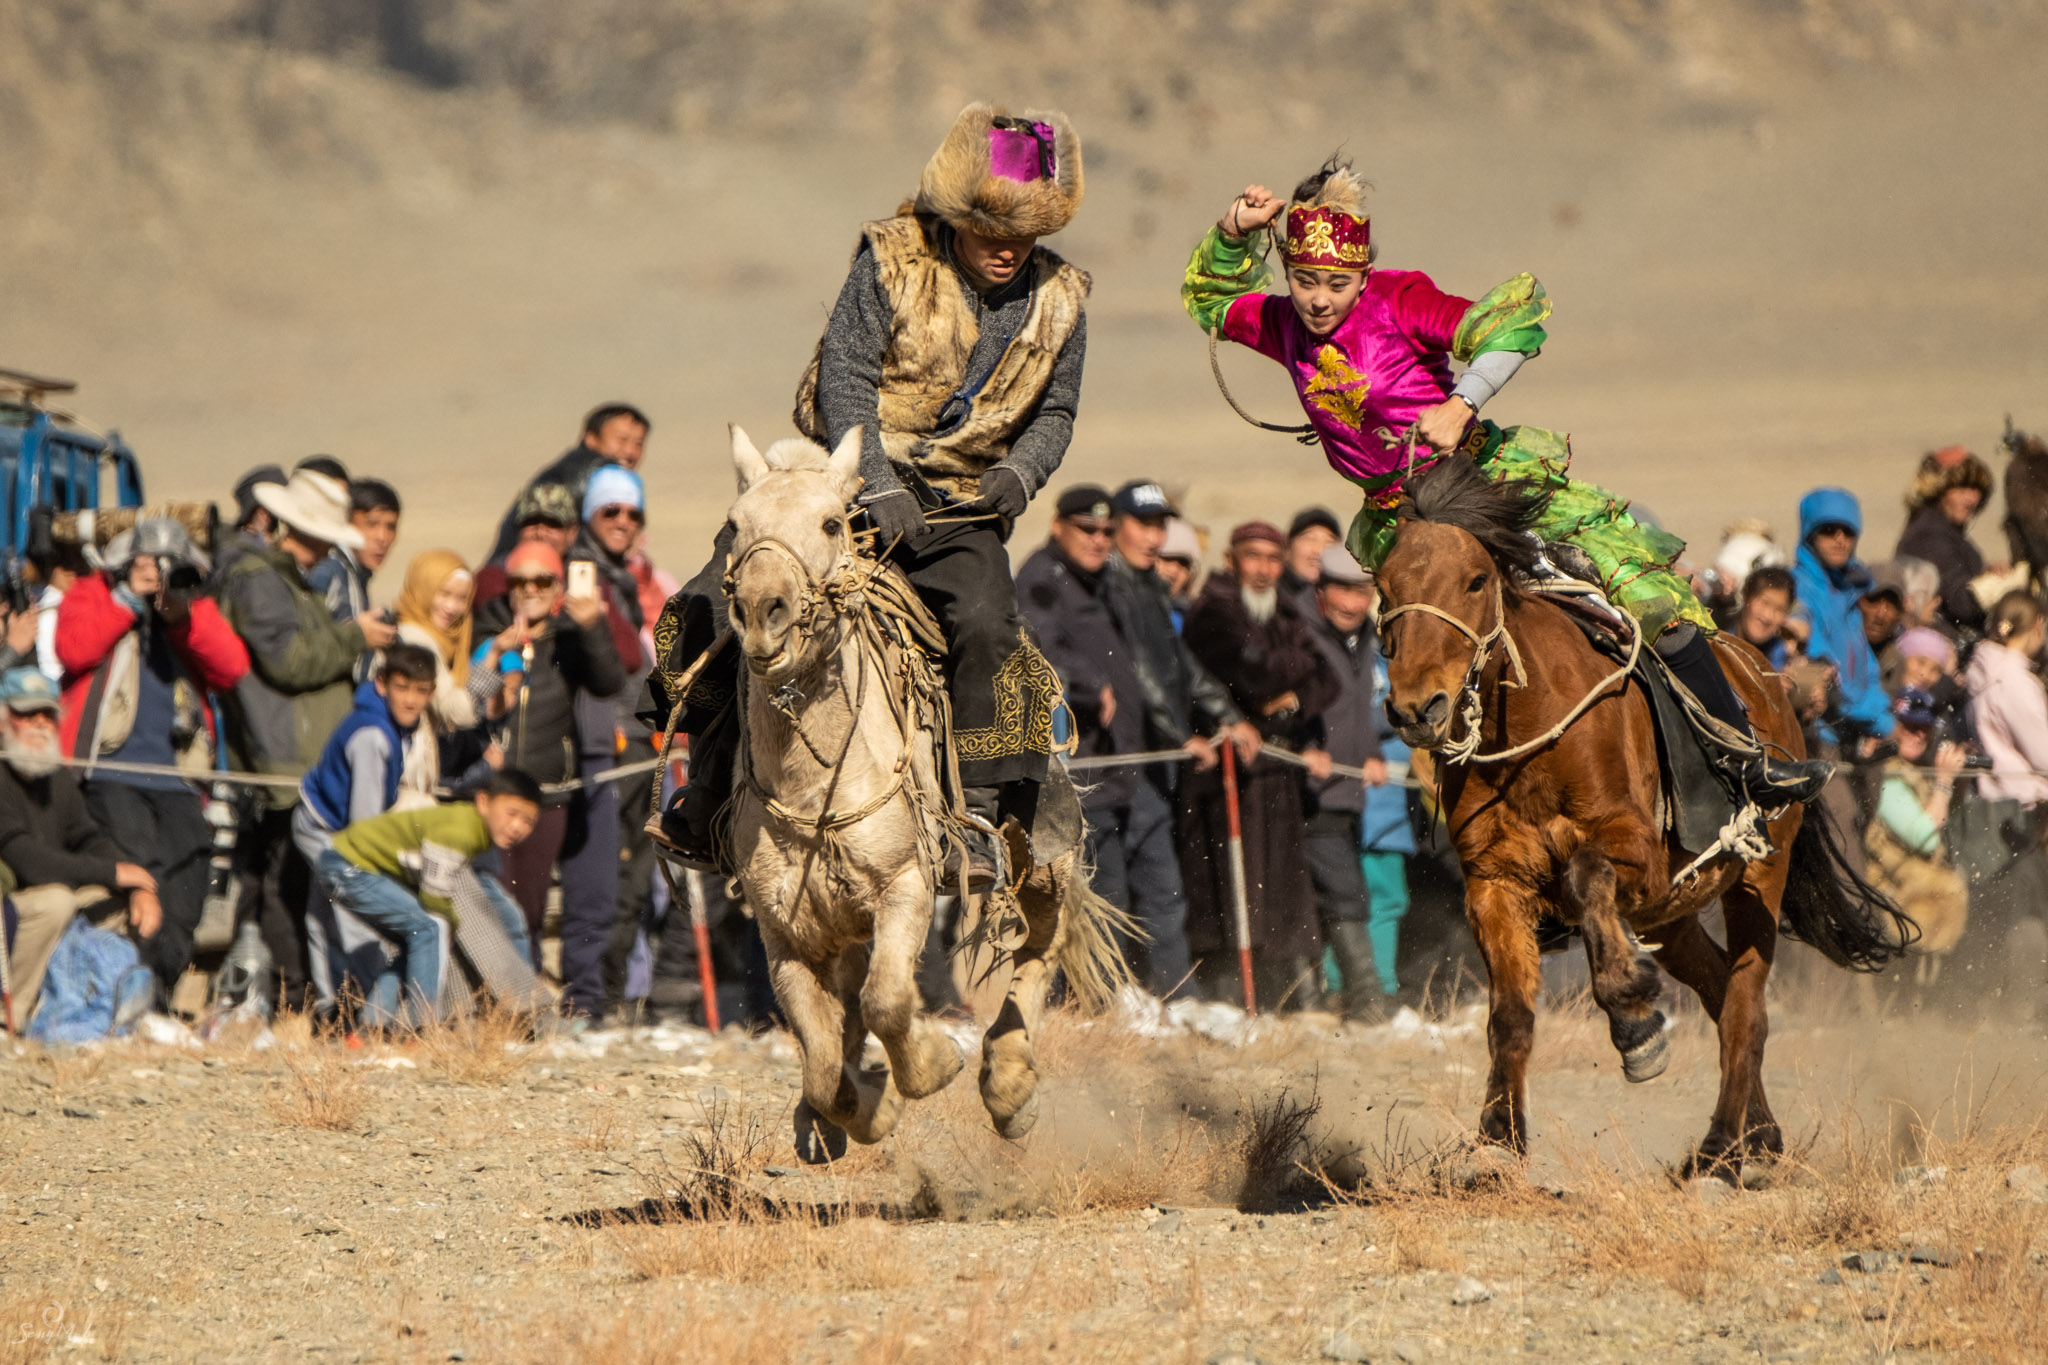 The game of Kiz Kuar is played at the Golden Eagle Festival